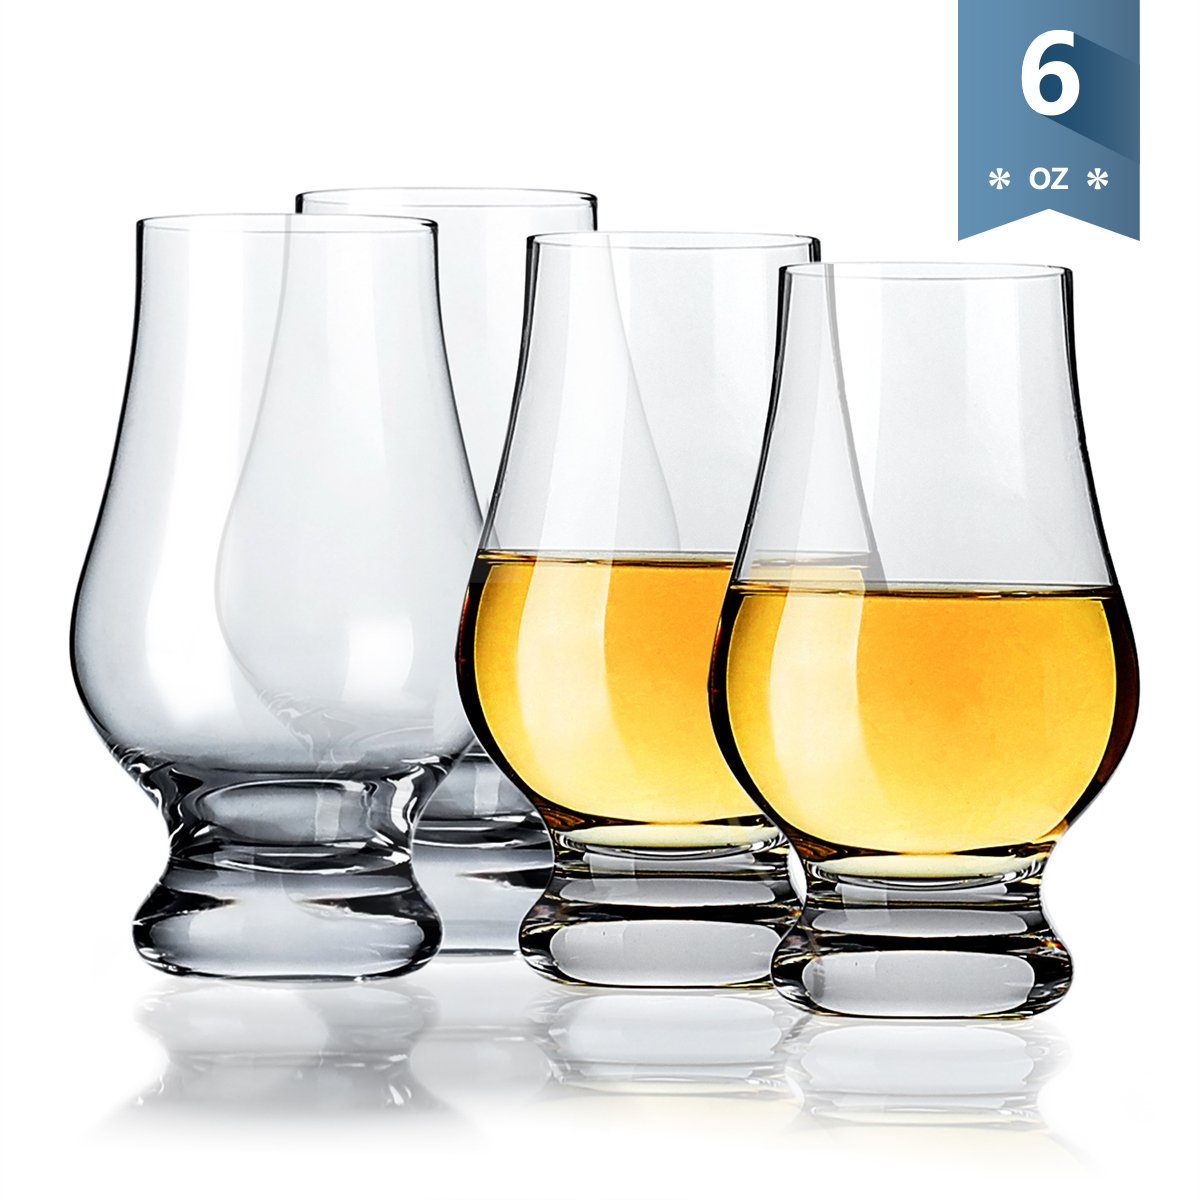 Sweese 4697 Whiskey Glasses - Crystal glass Perfect for Scotch and Bourbon, 6 Ounce, Set of 4